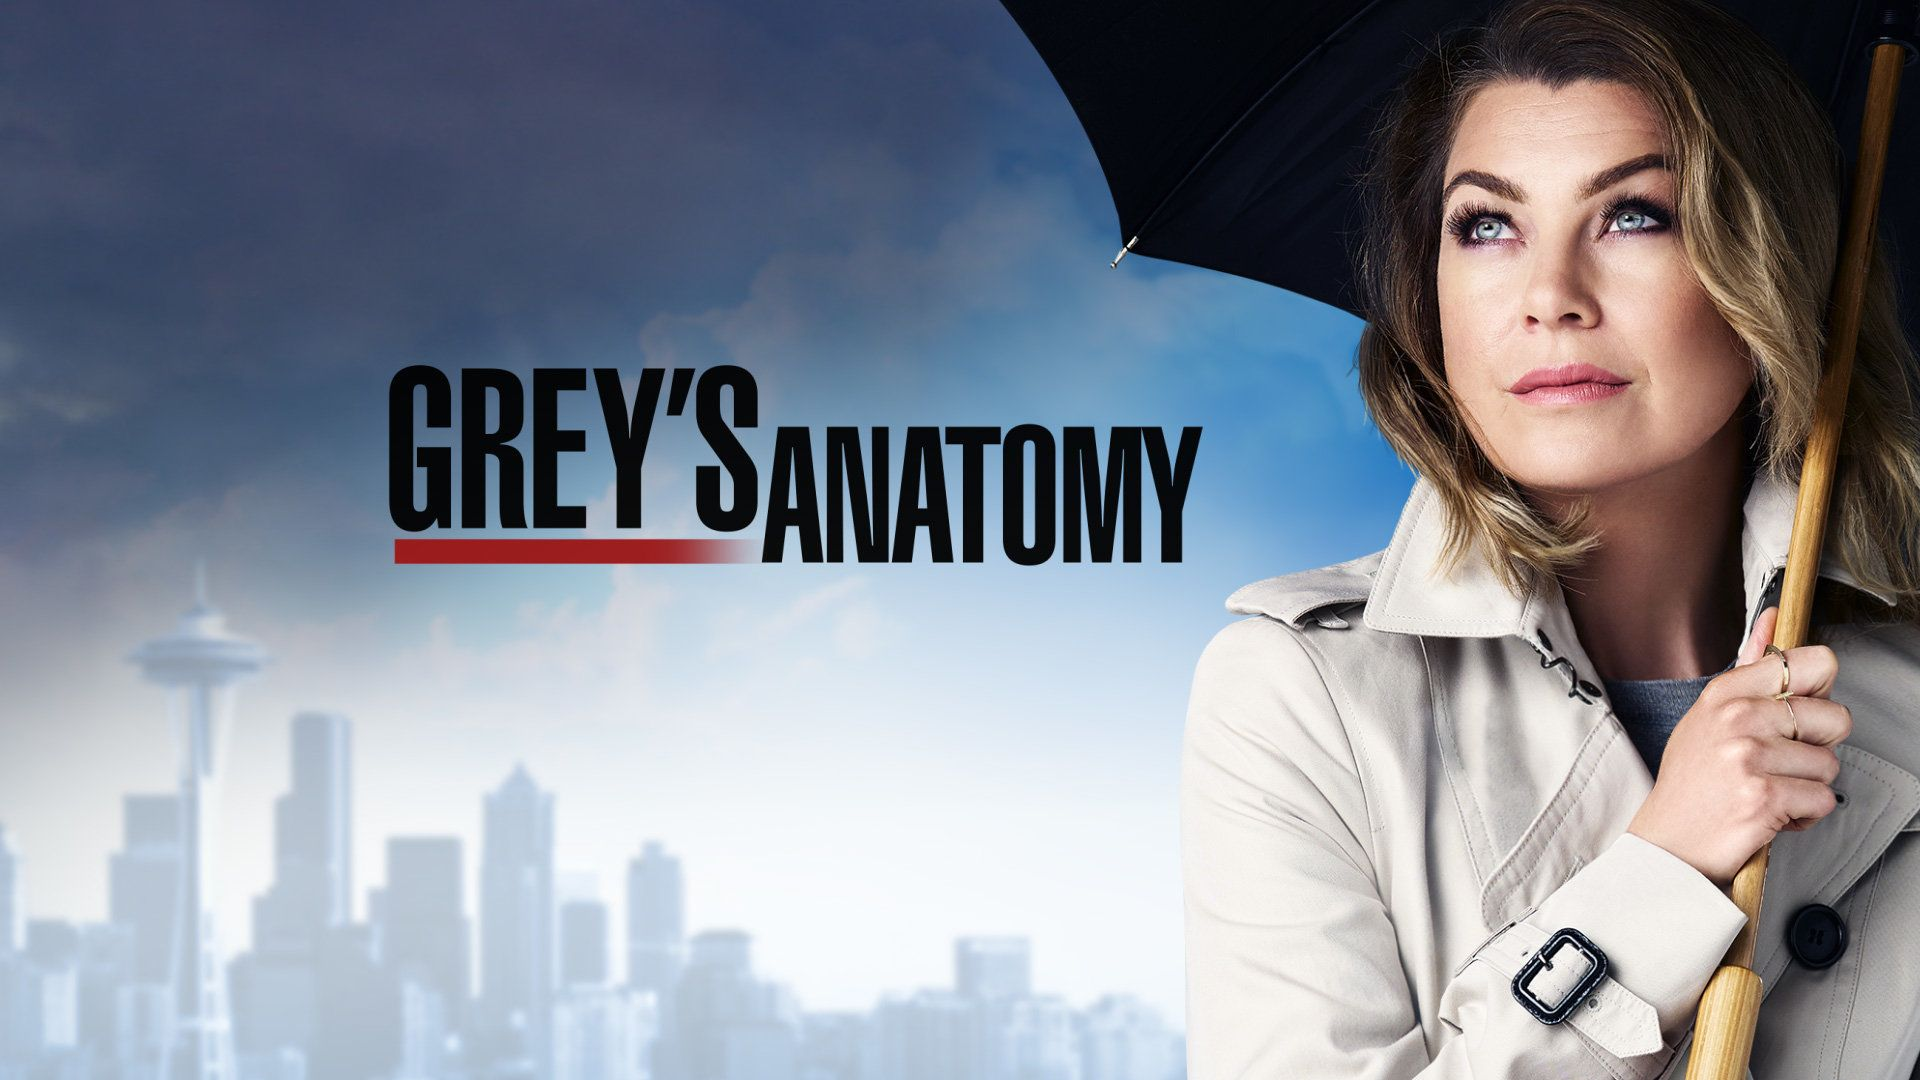 Download Greys Anatomy Wallpapers HD Download [1920x1080] 42 1920x1080